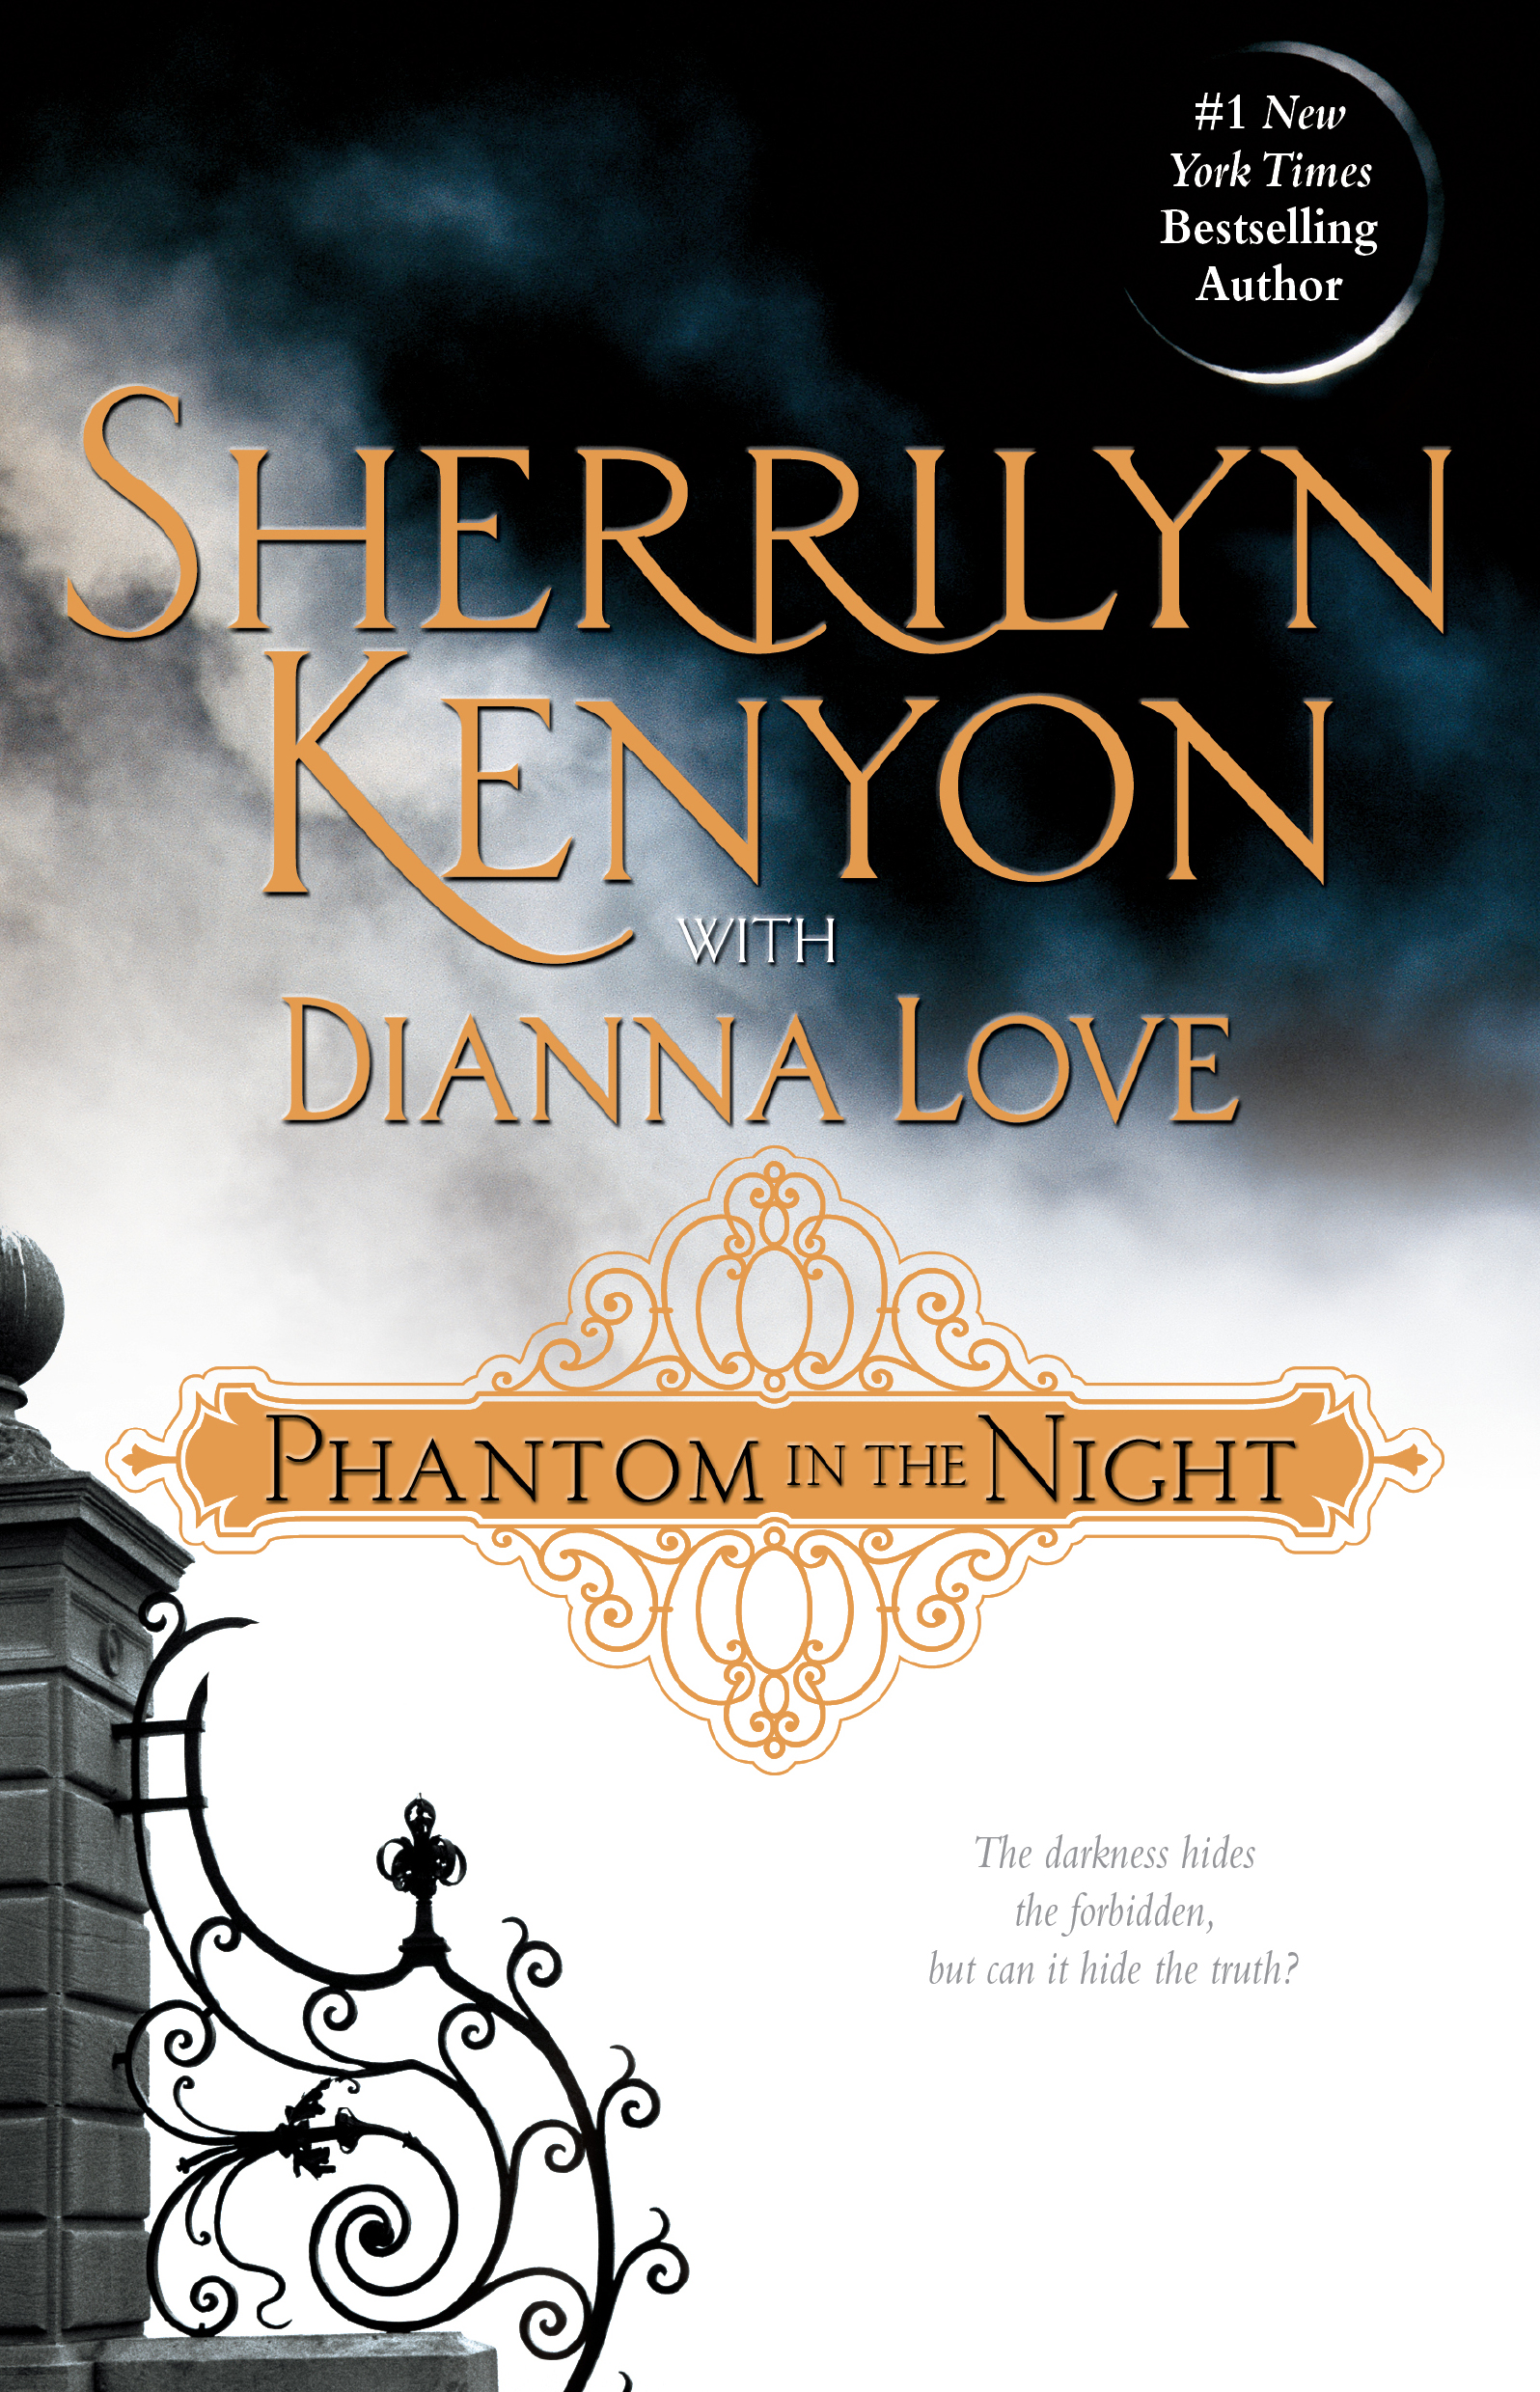 Book Cover Image (jpg): Phantom in the Night